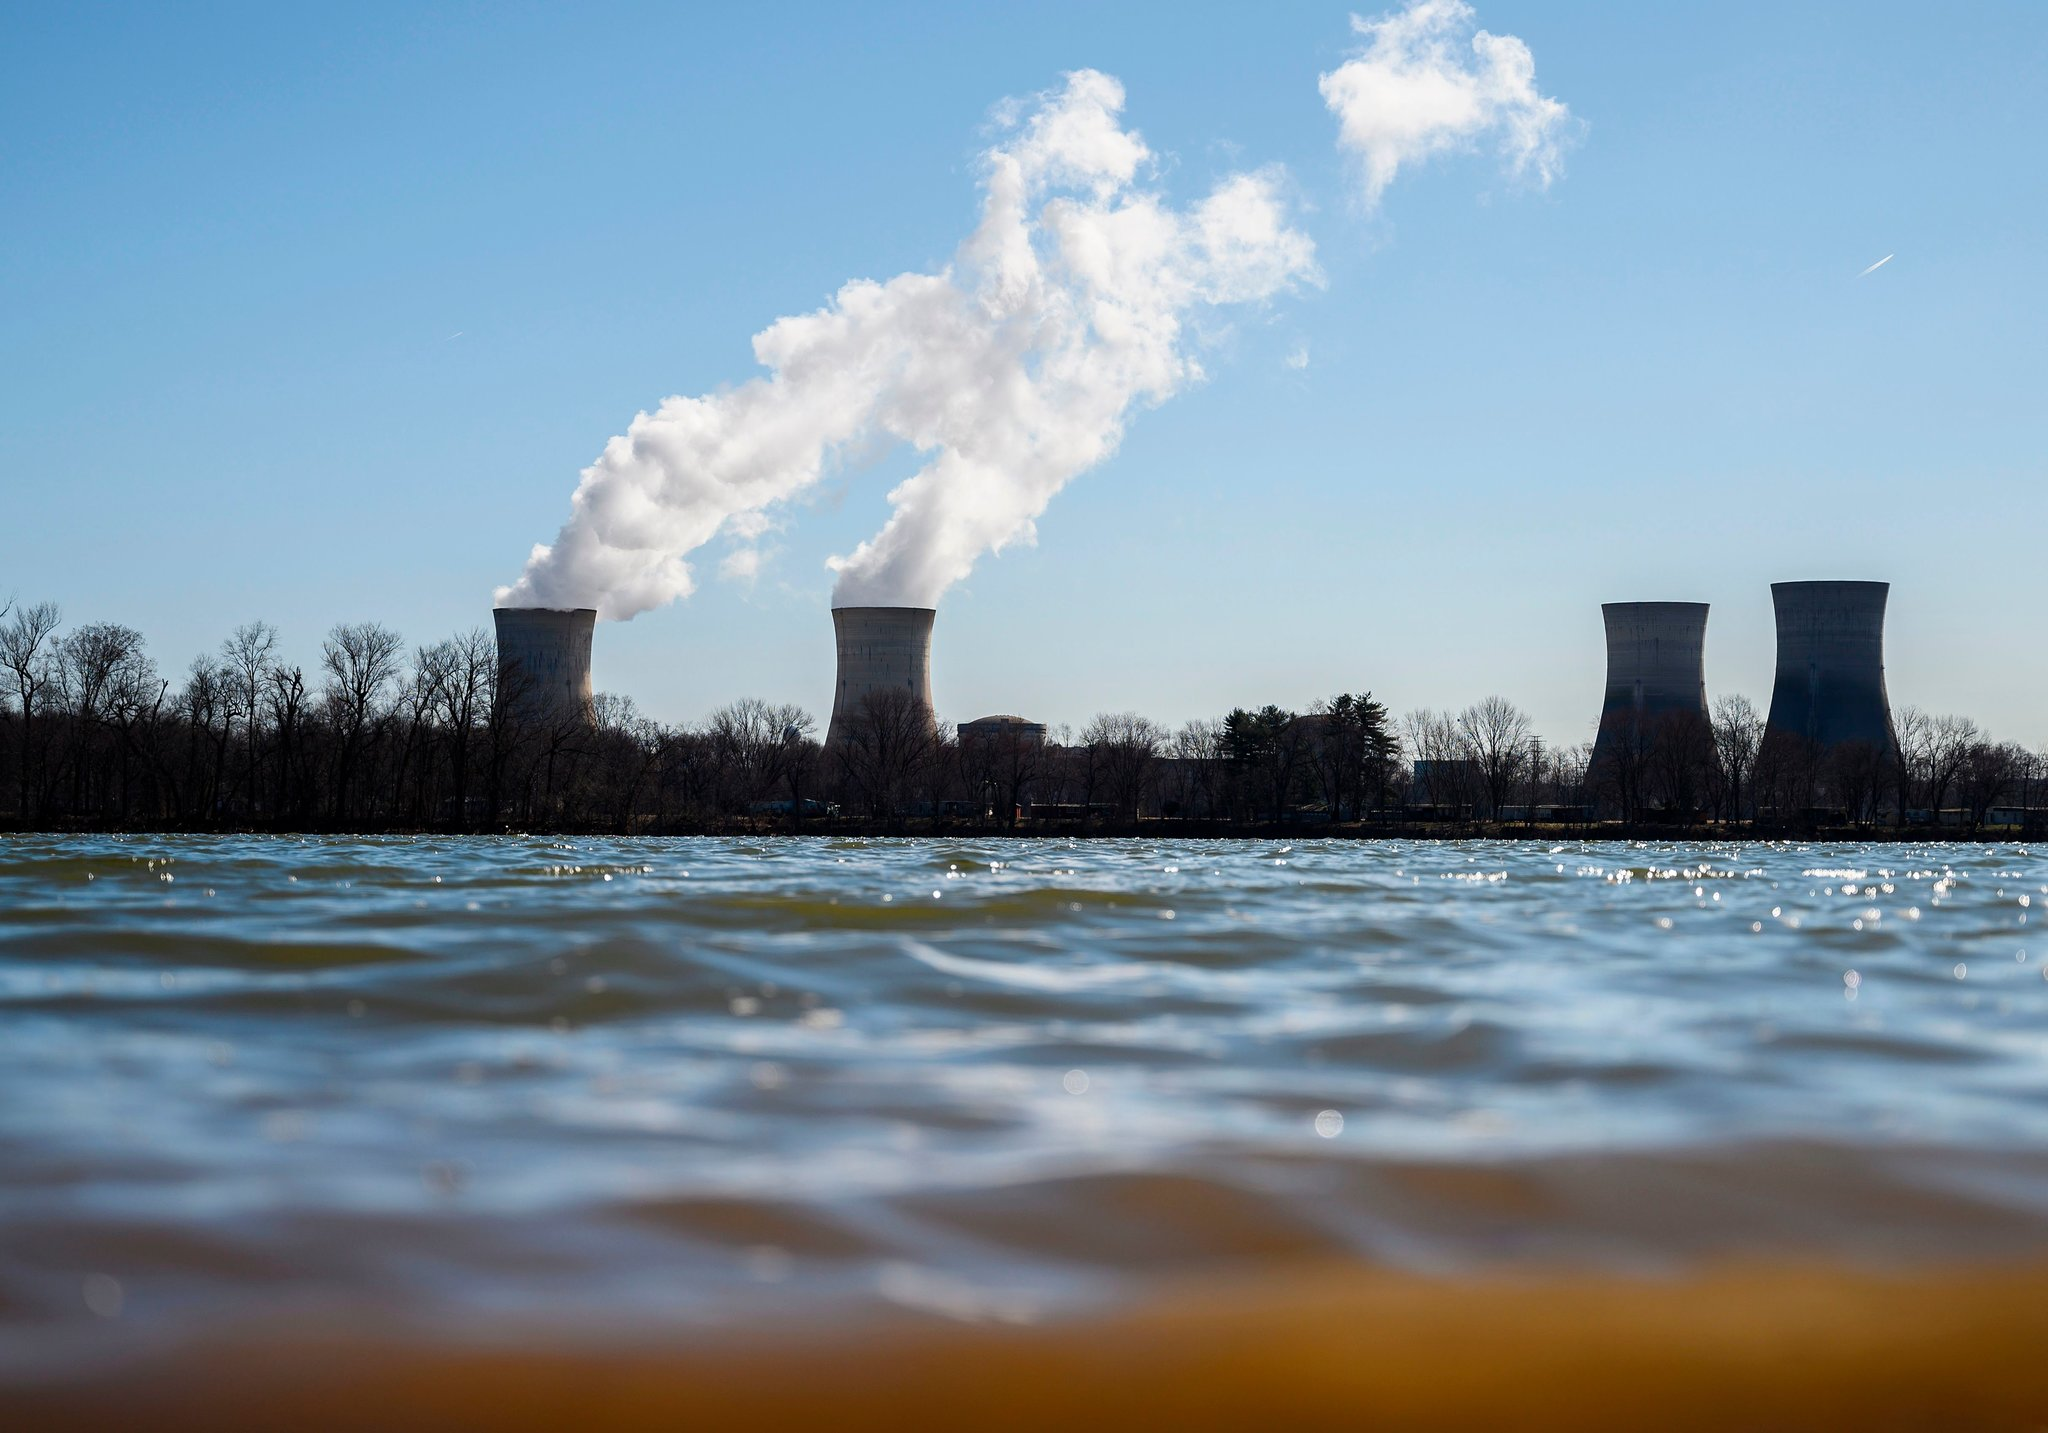 nuclear power plants in front of a lake